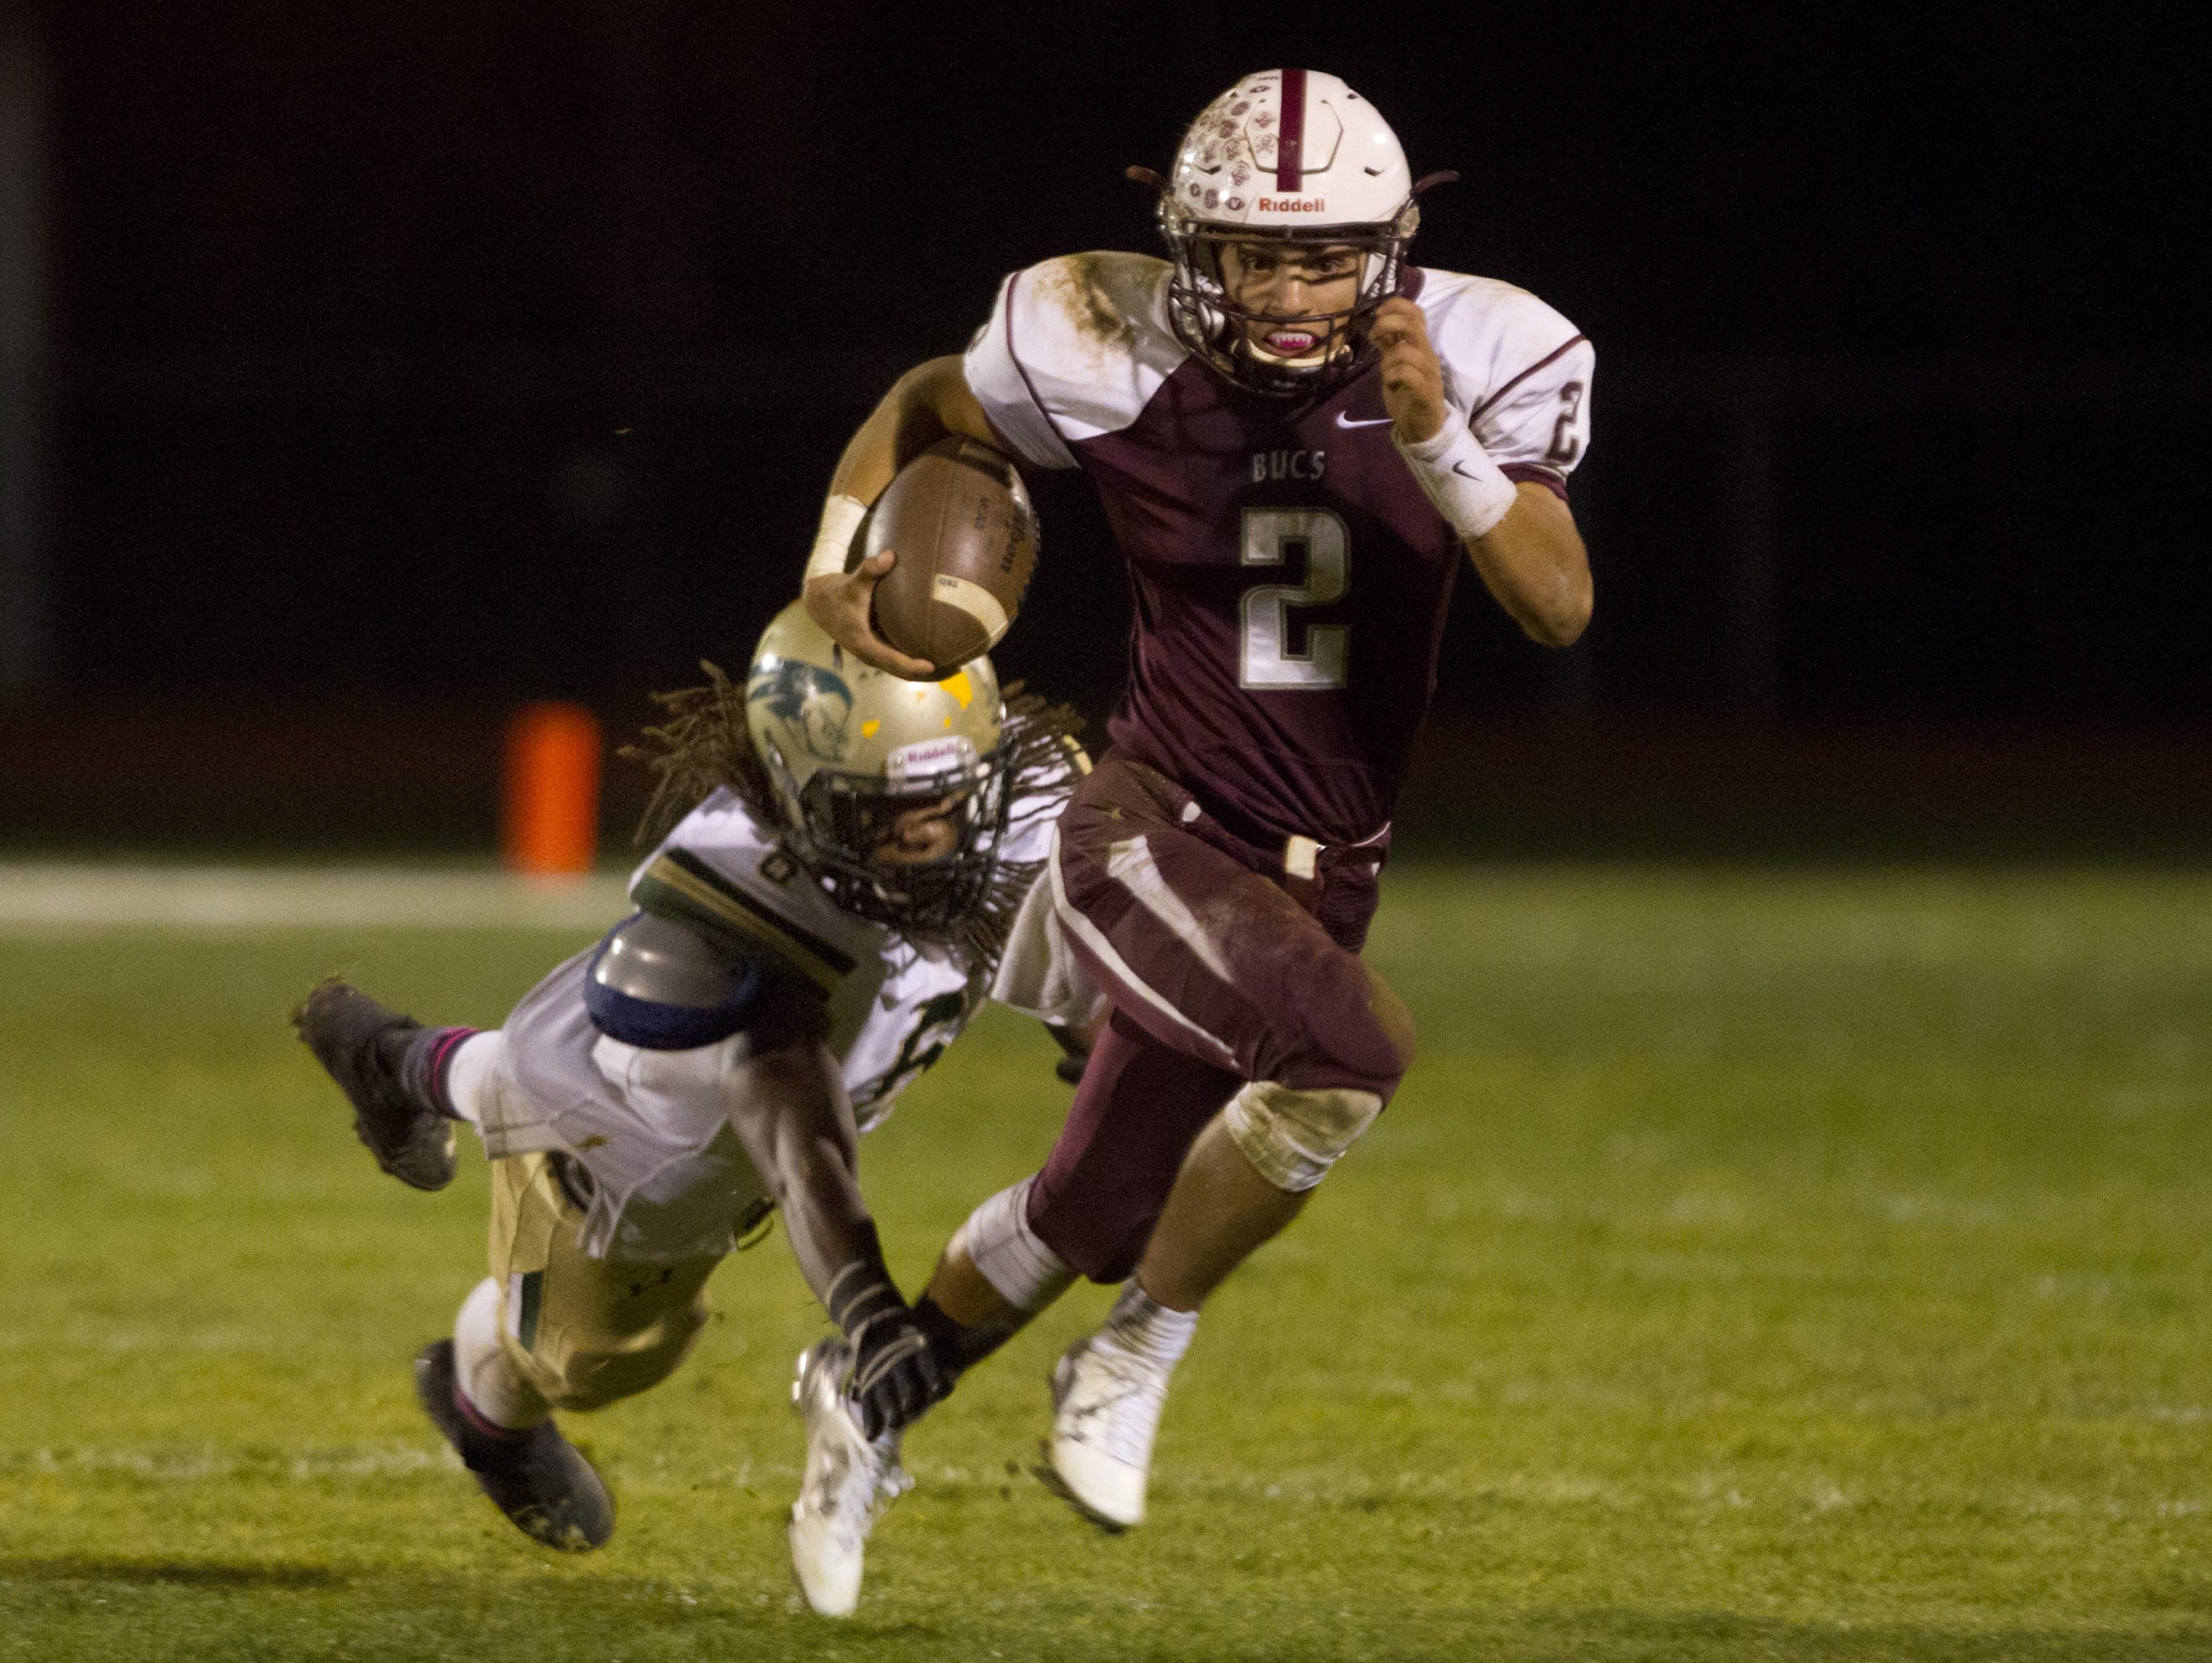 Red Bank's Jack Navitsky breaks away and scores the go-ahead touchdown against Red Bank Catholic earlier this season.